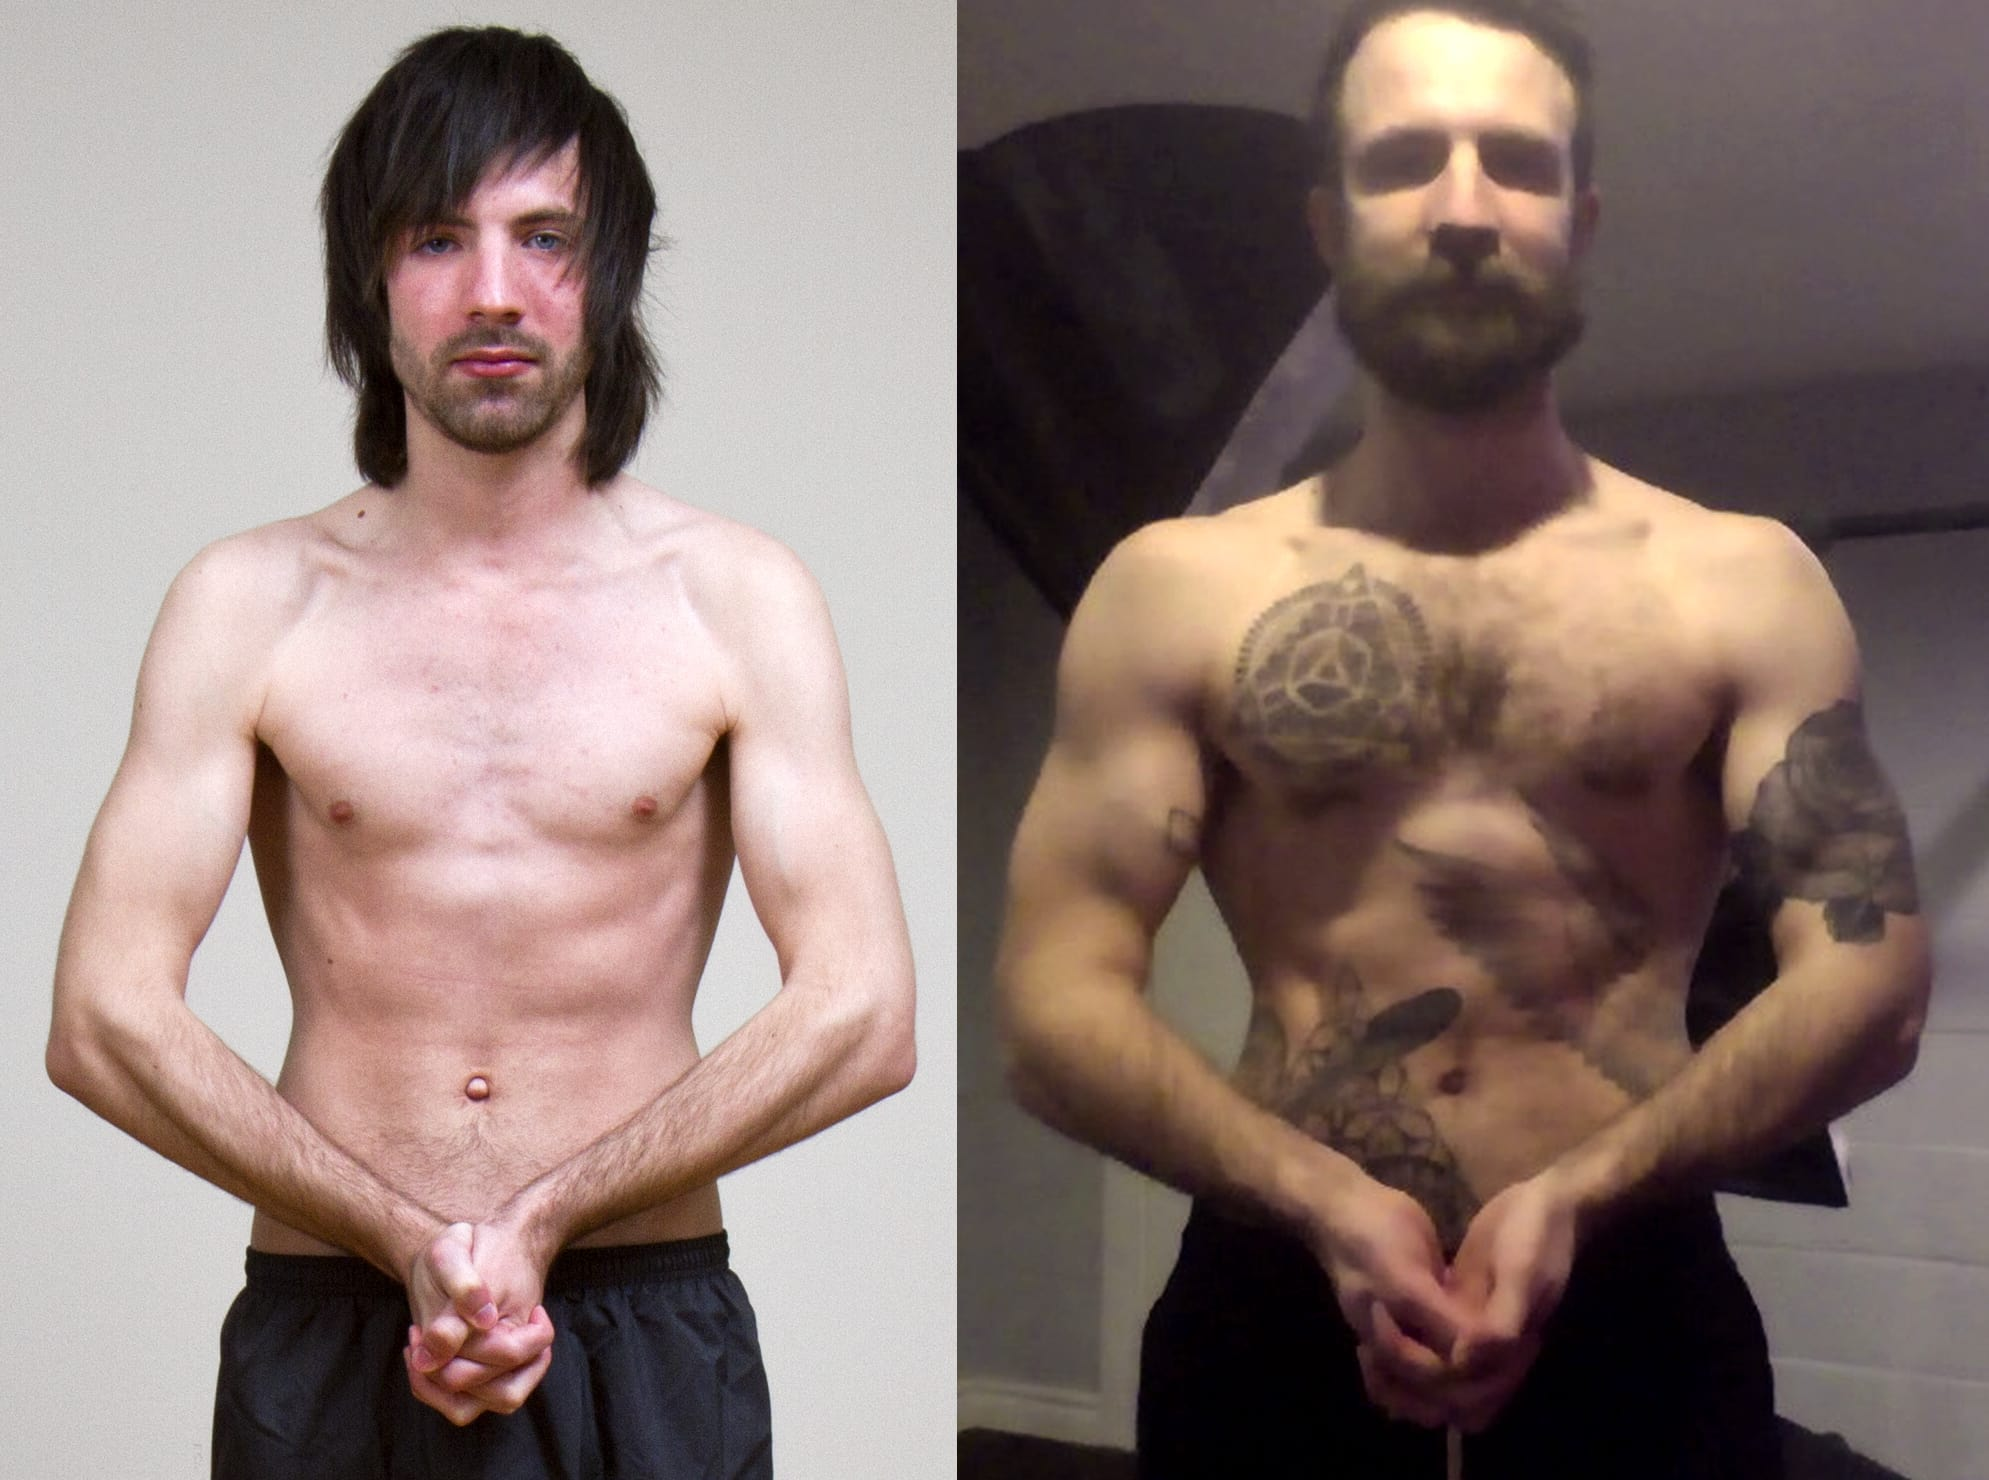 Before and after photo showing a skinny guy gaining muscle mass.